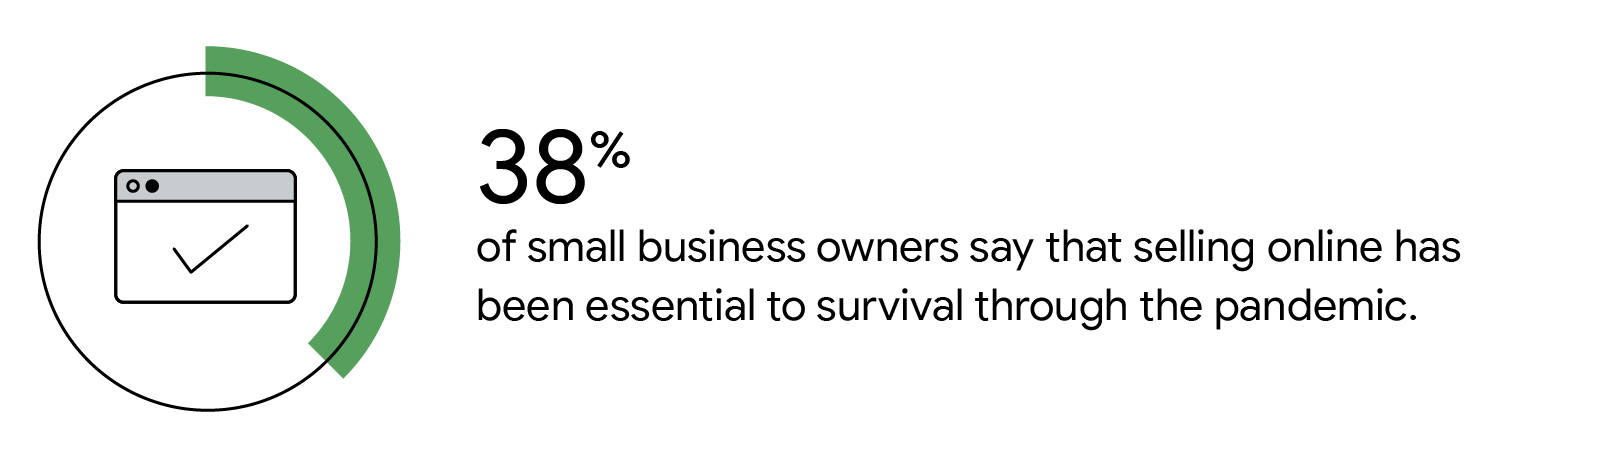 Illustrated icon represents 38% of small business owners say that selling online has been essential to survival through the pandemic.